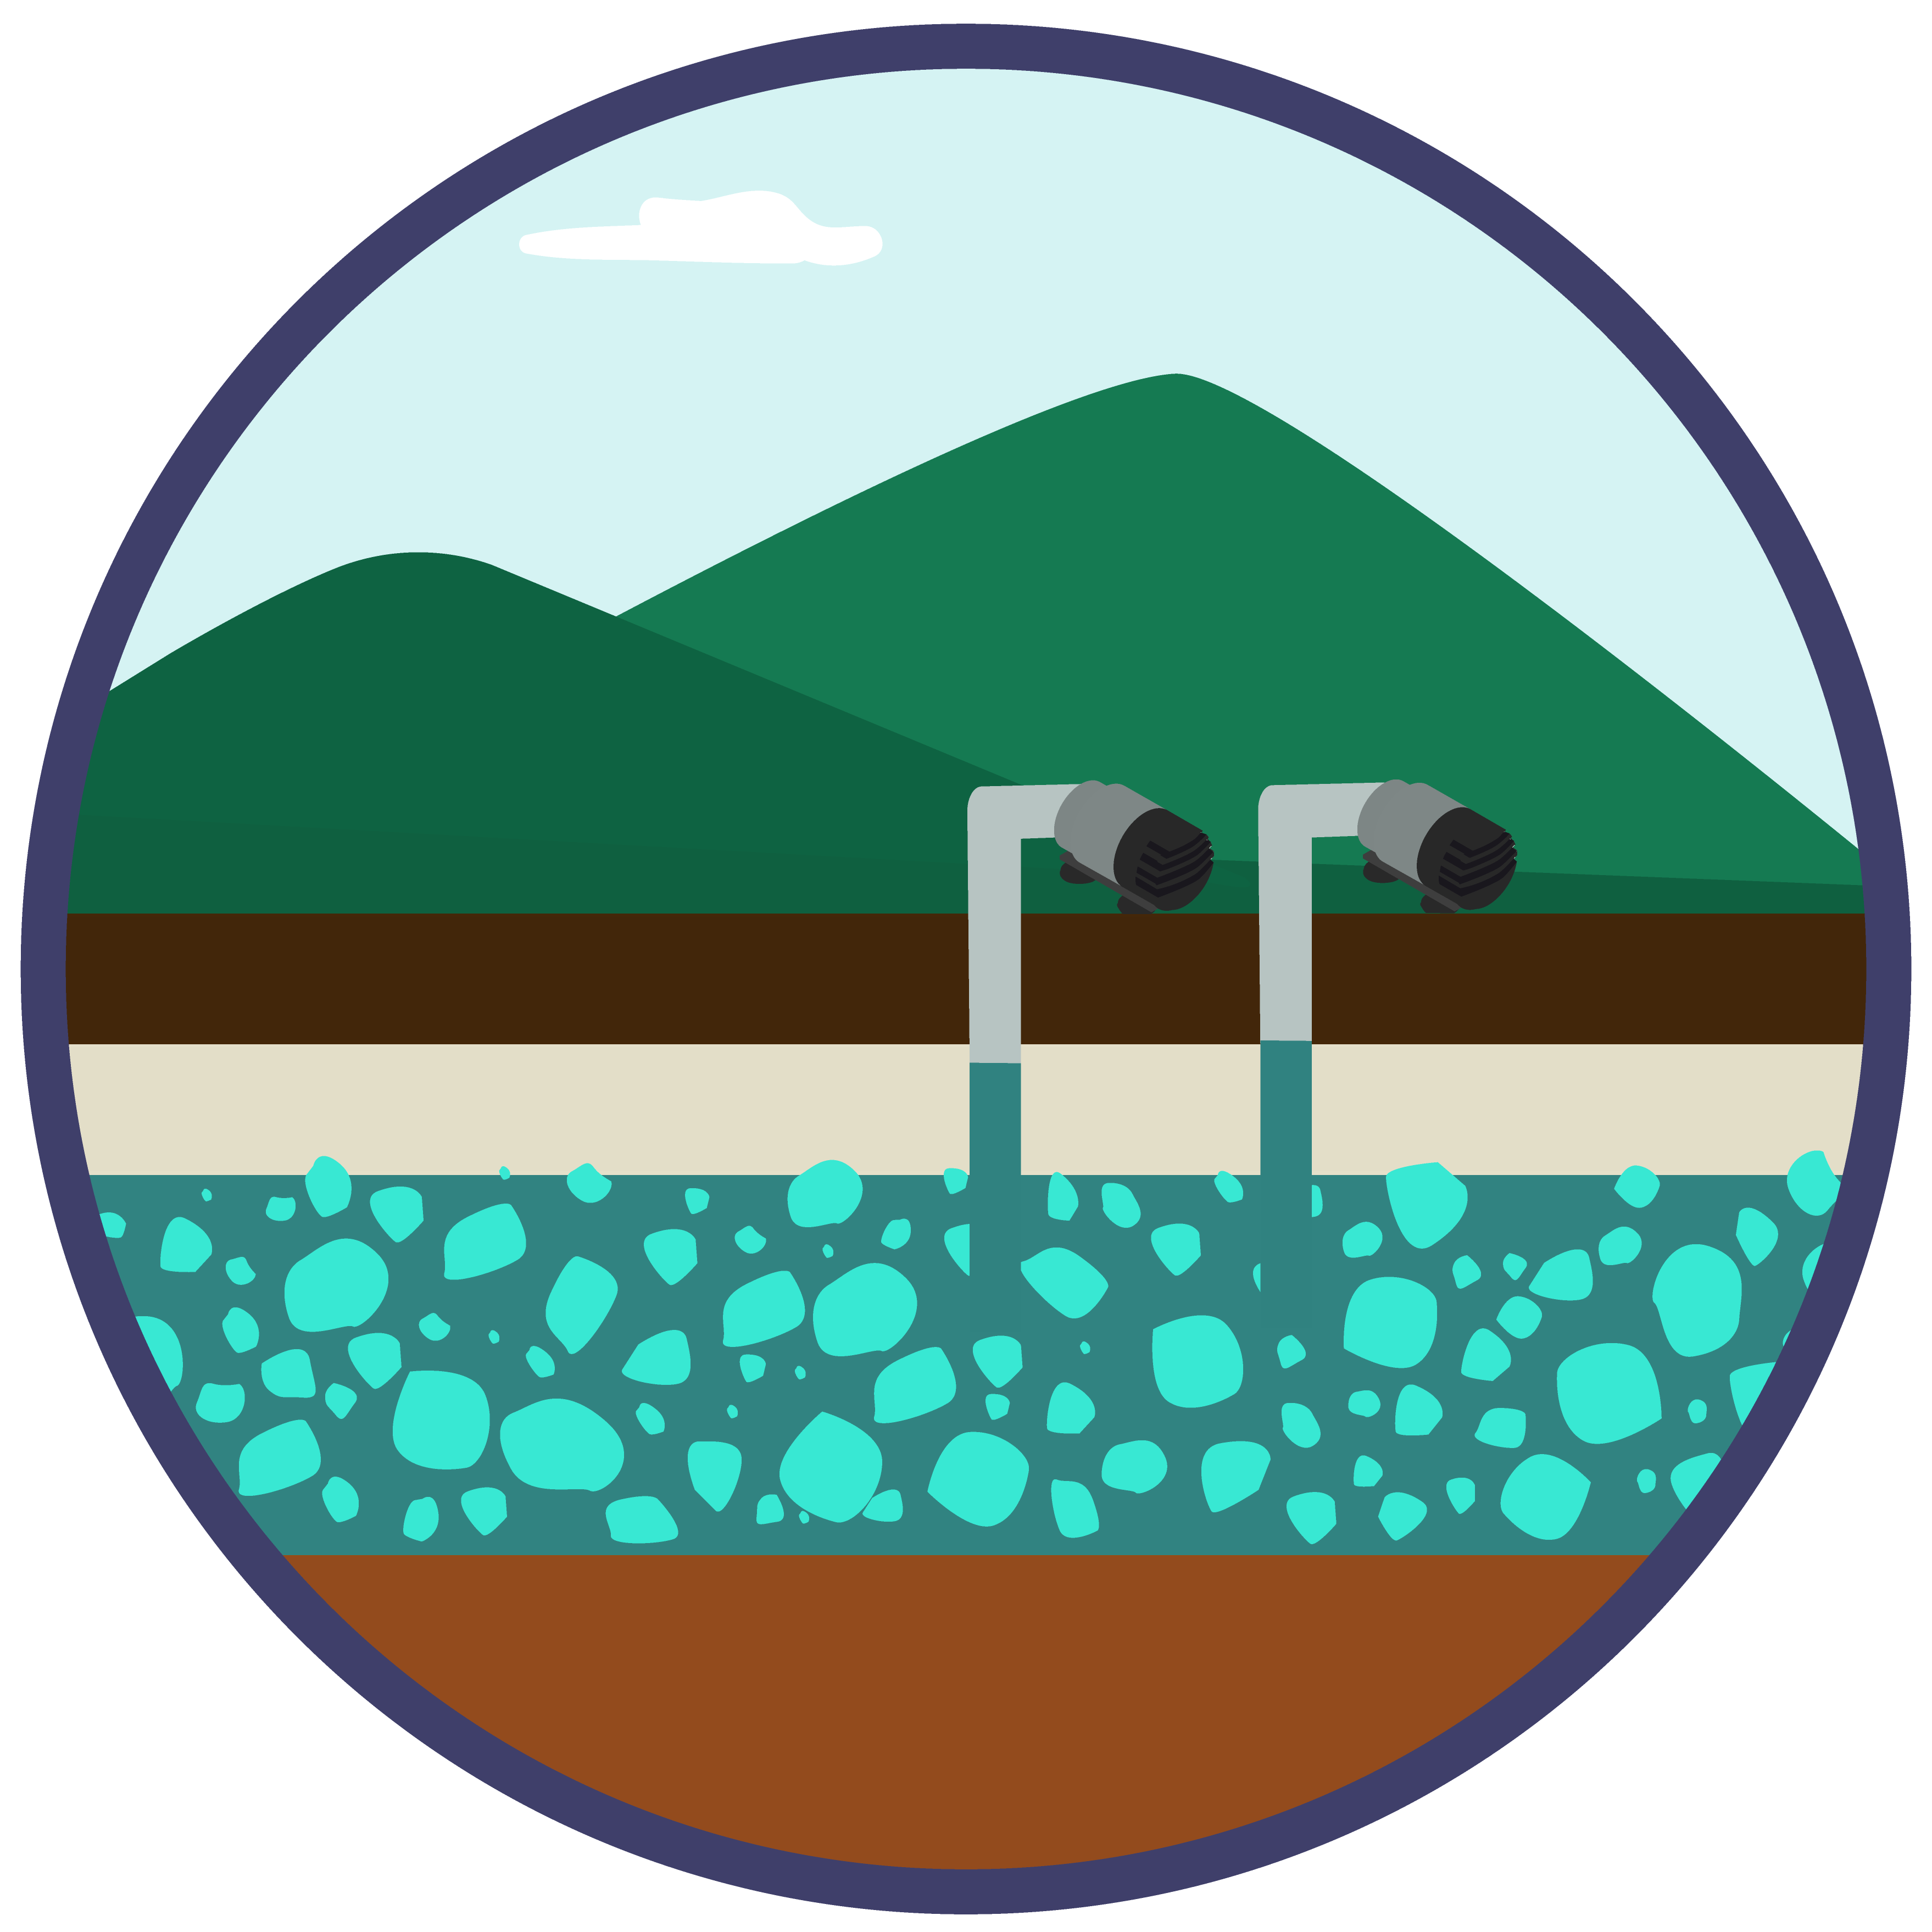 Groundwater banner image